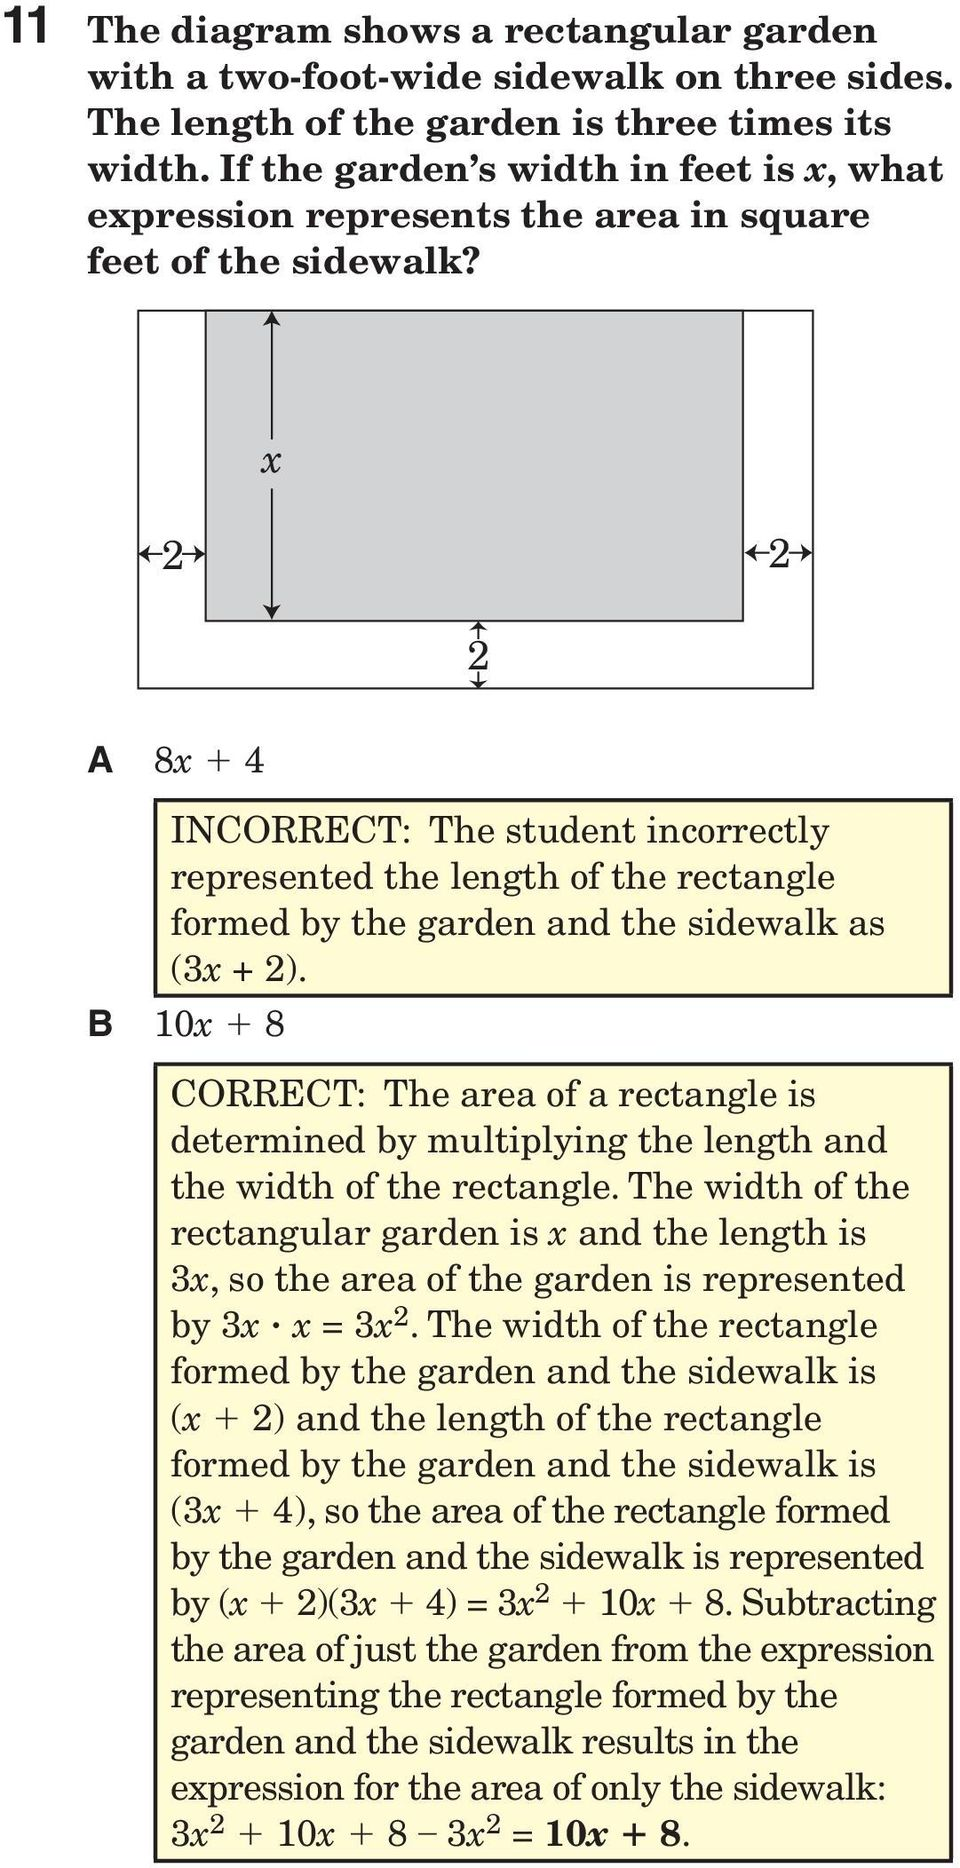 x 2 2 2 A 8x + 4 INCORRECT: The student incorrectly represented the length of the rectangle formed by the garden and the sidewalk as (3x + 2).